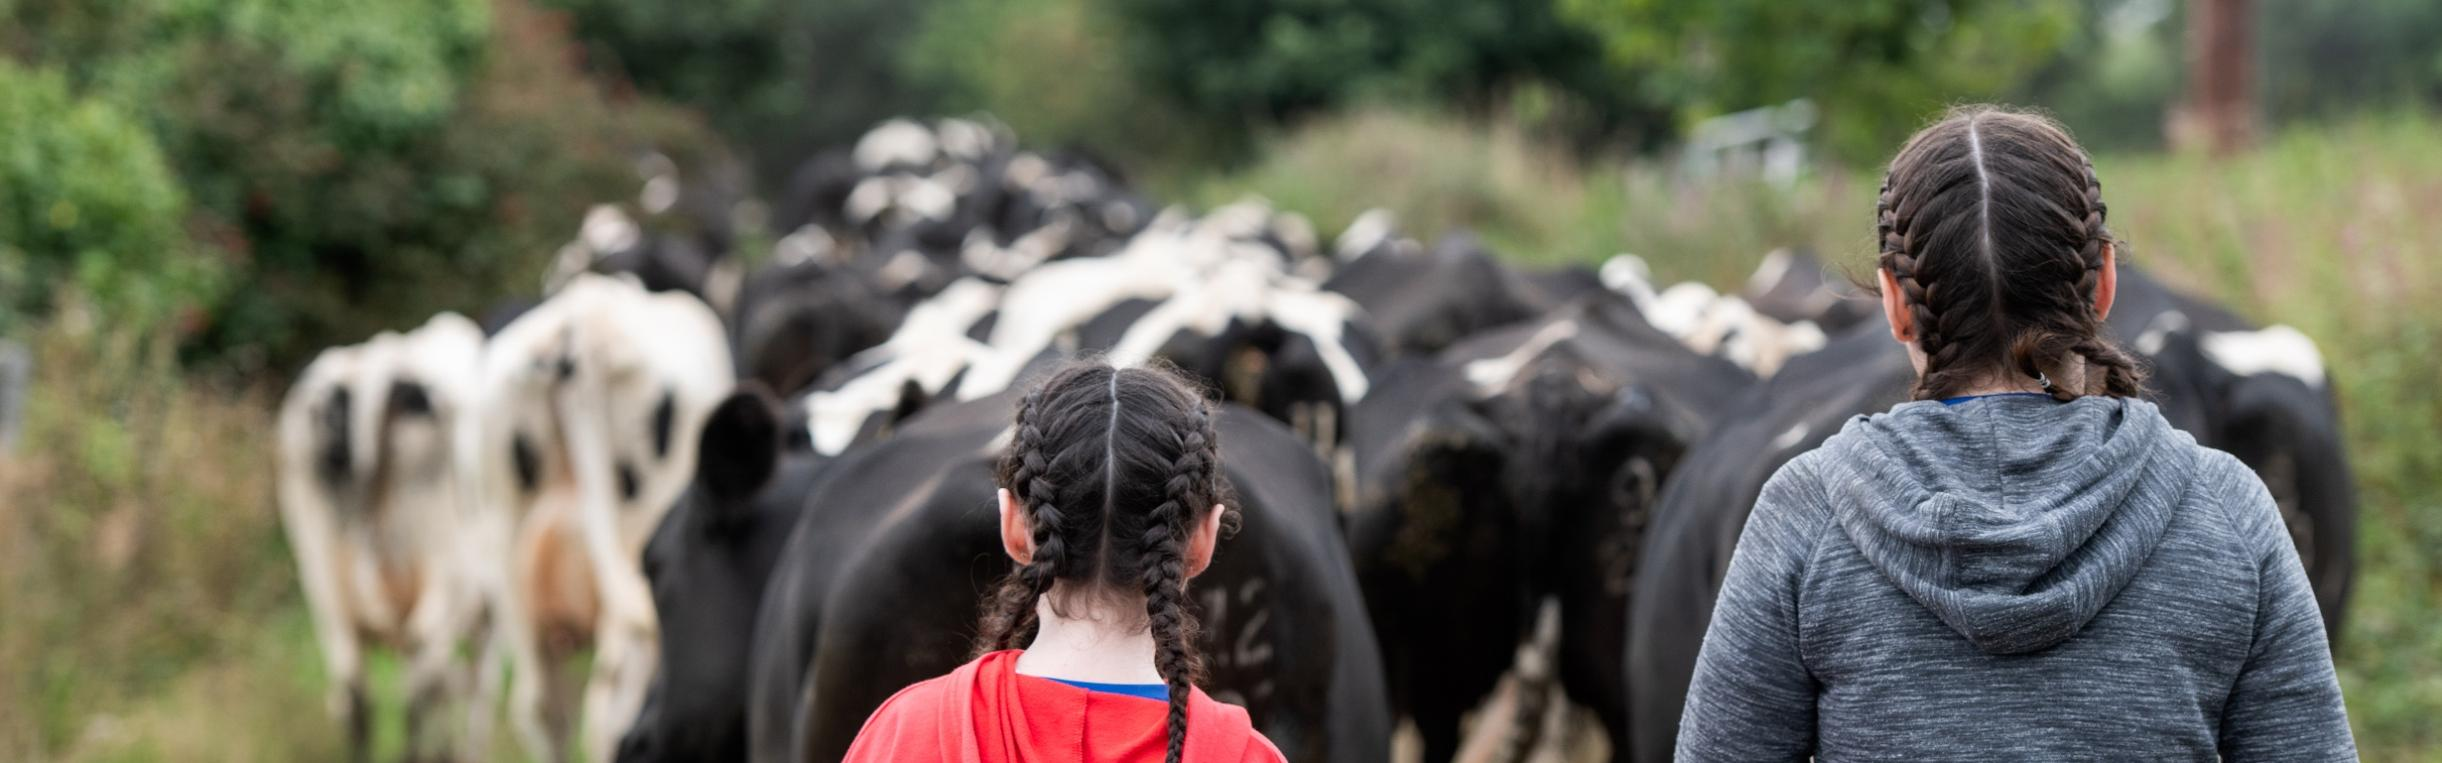 Two girls walking with cows